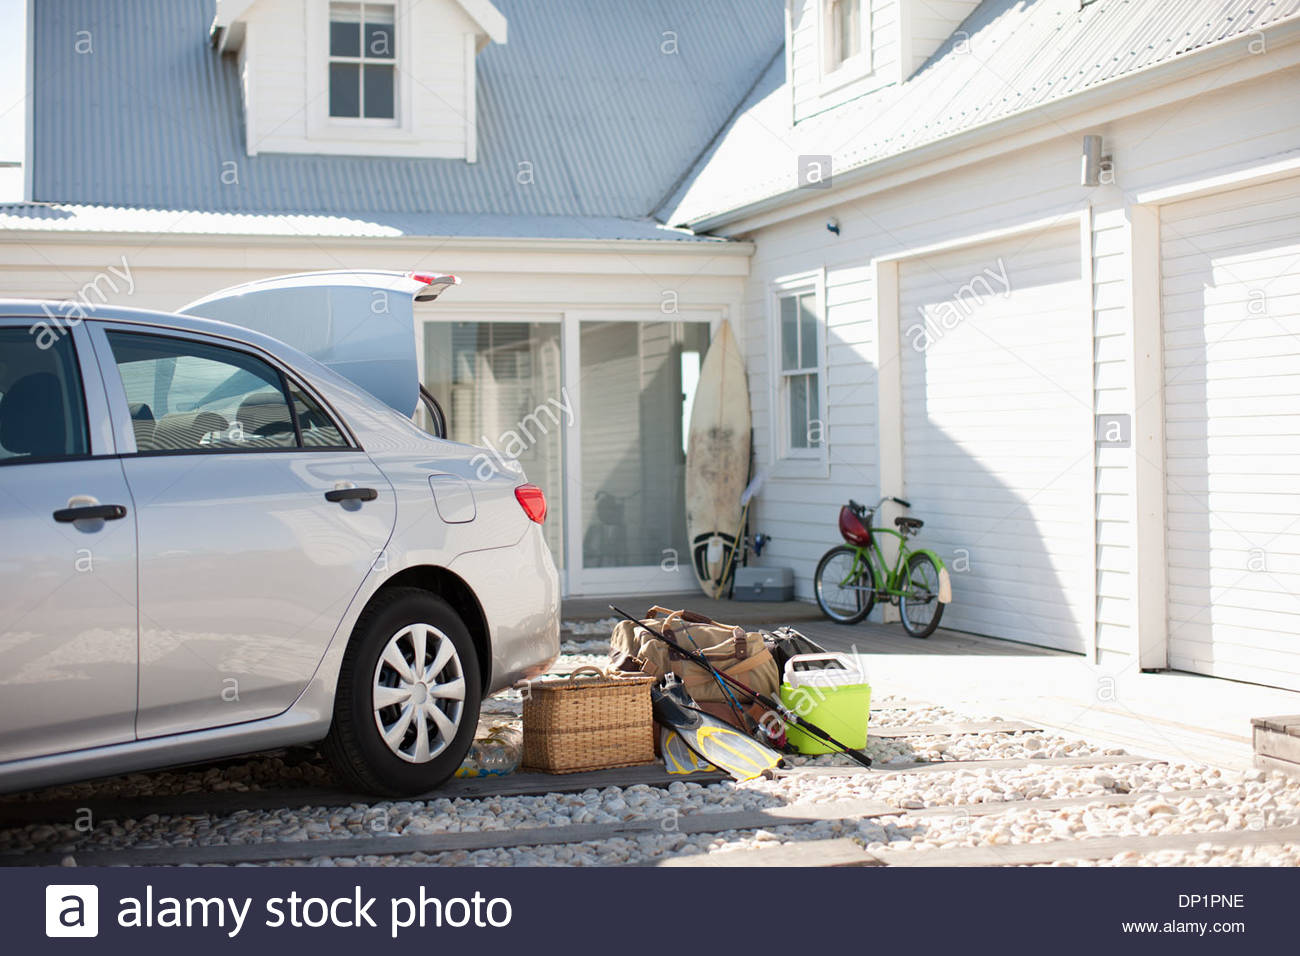 Picnic basket, fishing rod, flippers and bags outside car in driveway - Stock Image